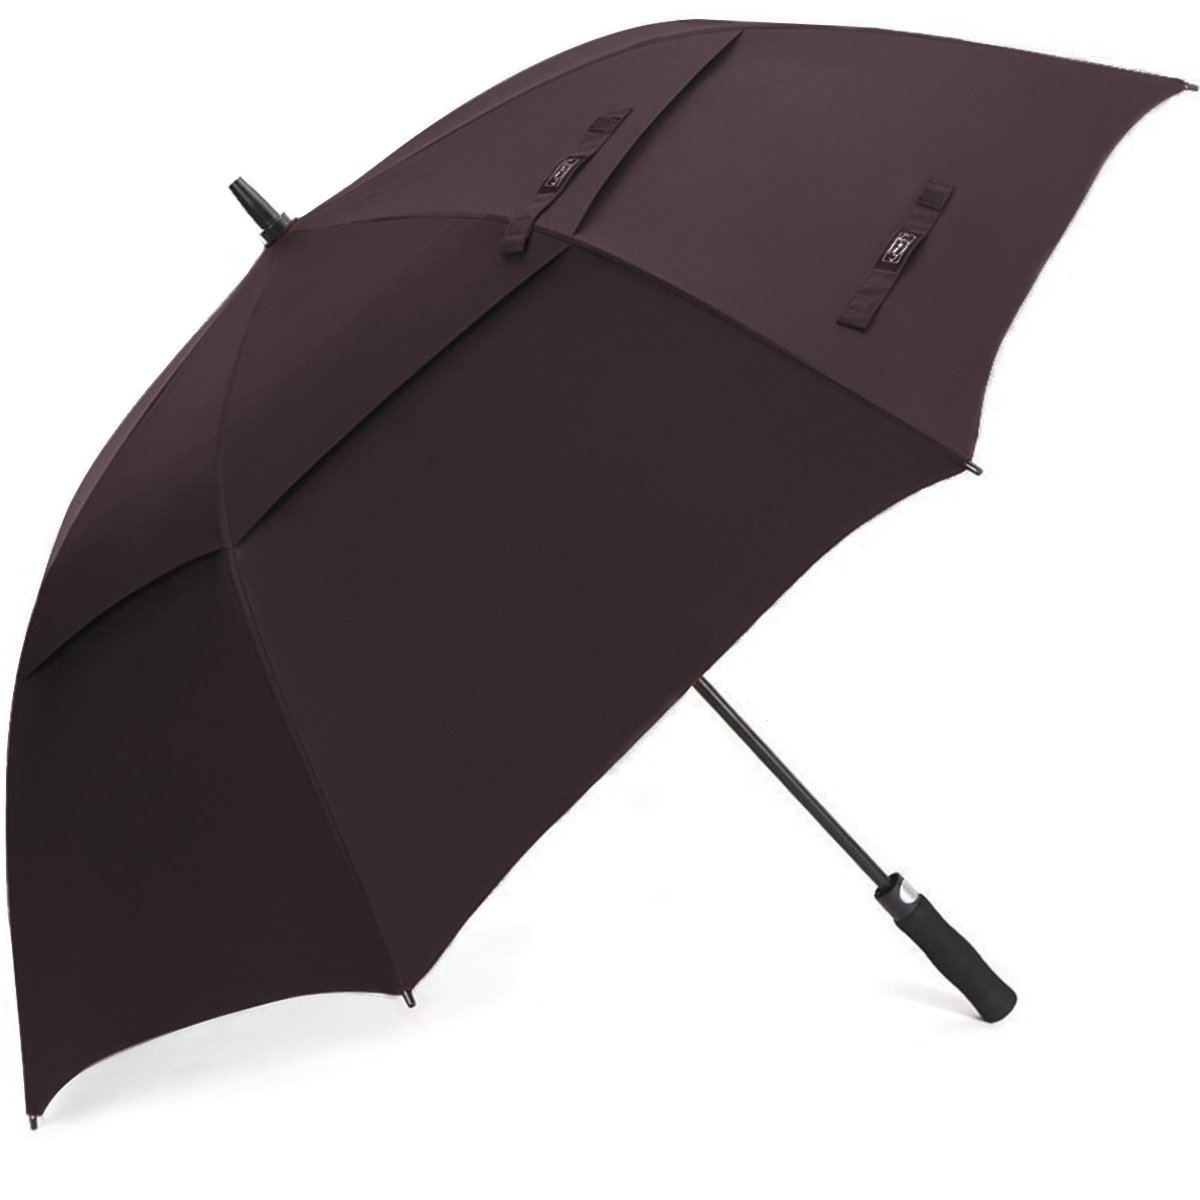 G4Free 68 Inch Automatic Open Golf Umbrella Double Canopy Extra Large Oversize Windproof Waterproof Stick Umbrellas(Coffee)